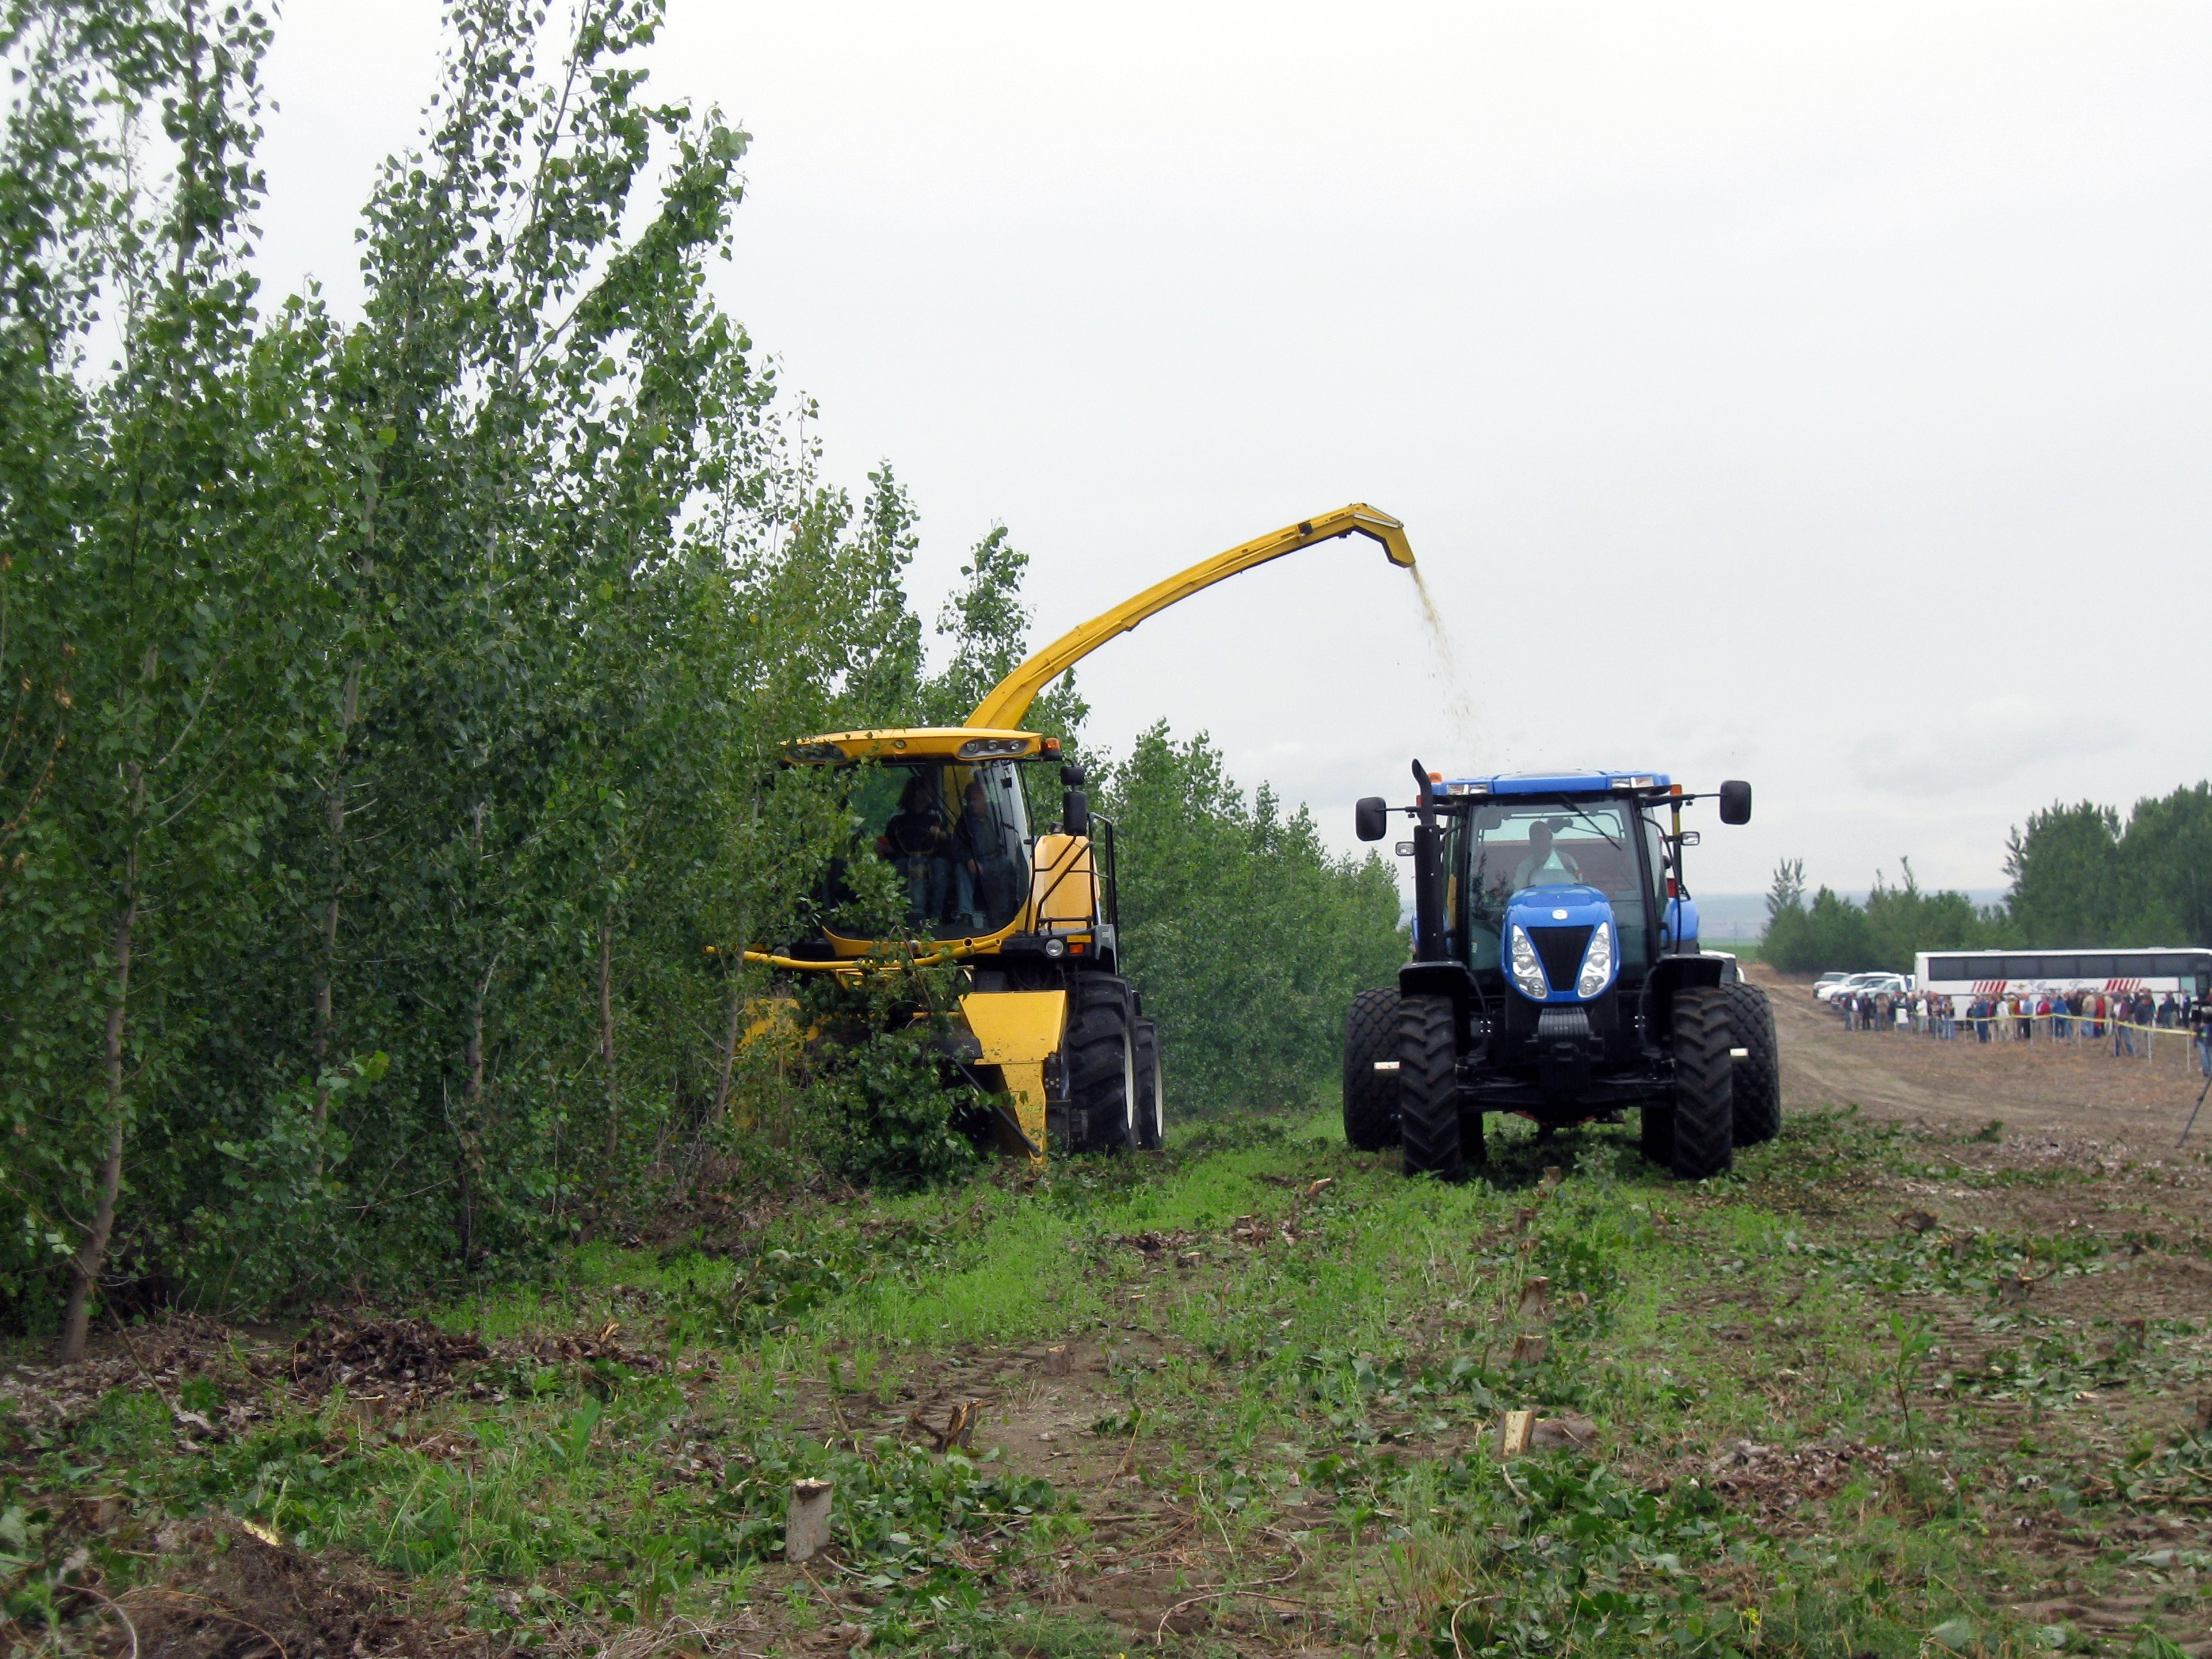 Poplar tree being harvested for cellulosic biofuel feedstock